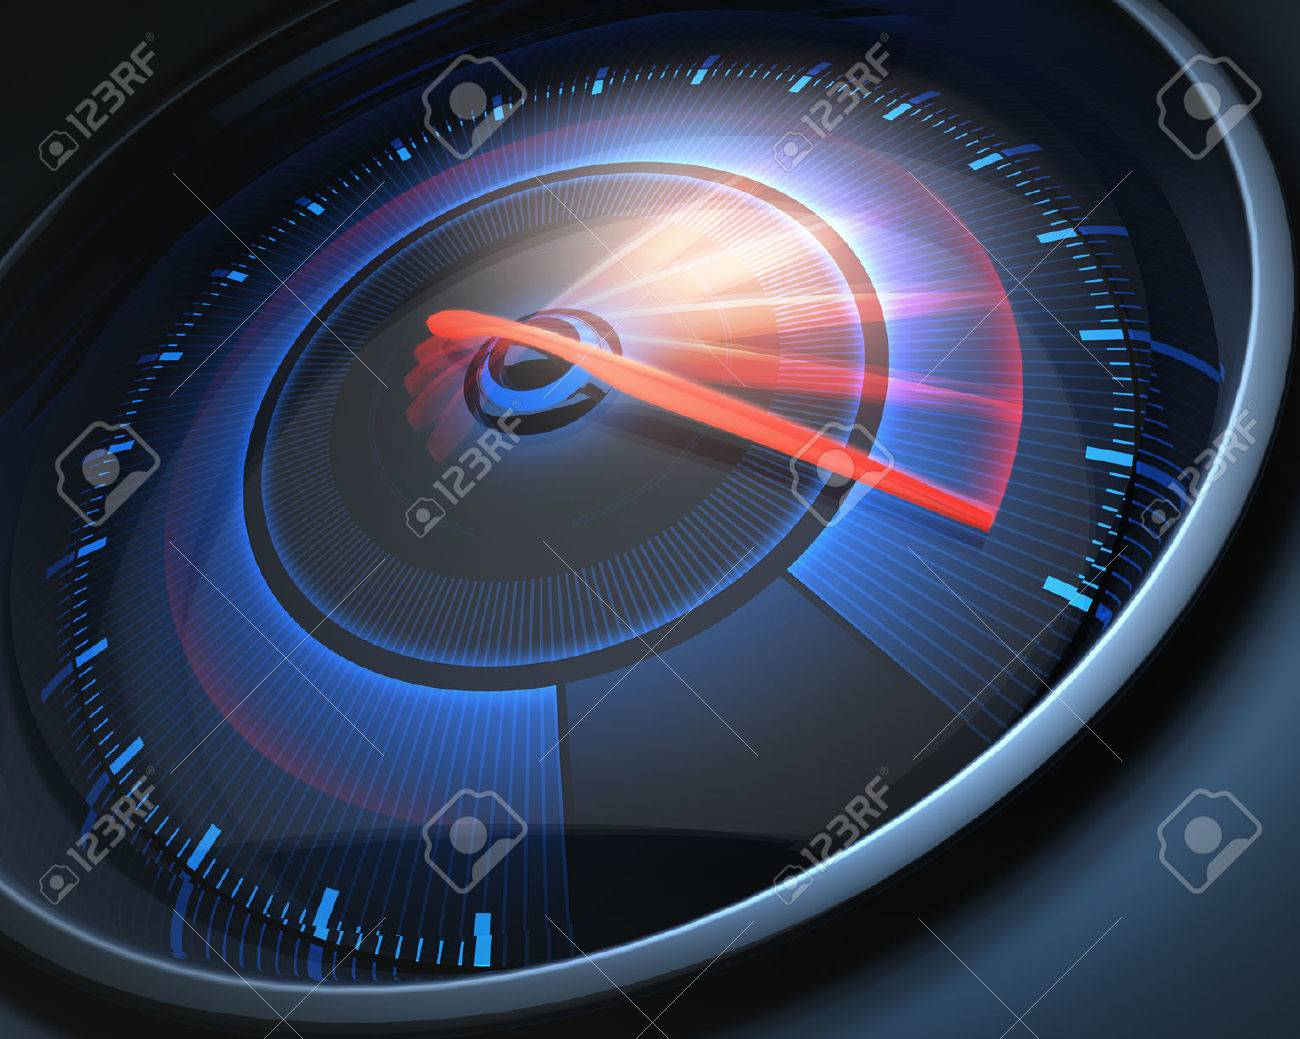 Speedometer scoring high speed, but without indicators numbers. - 46527217